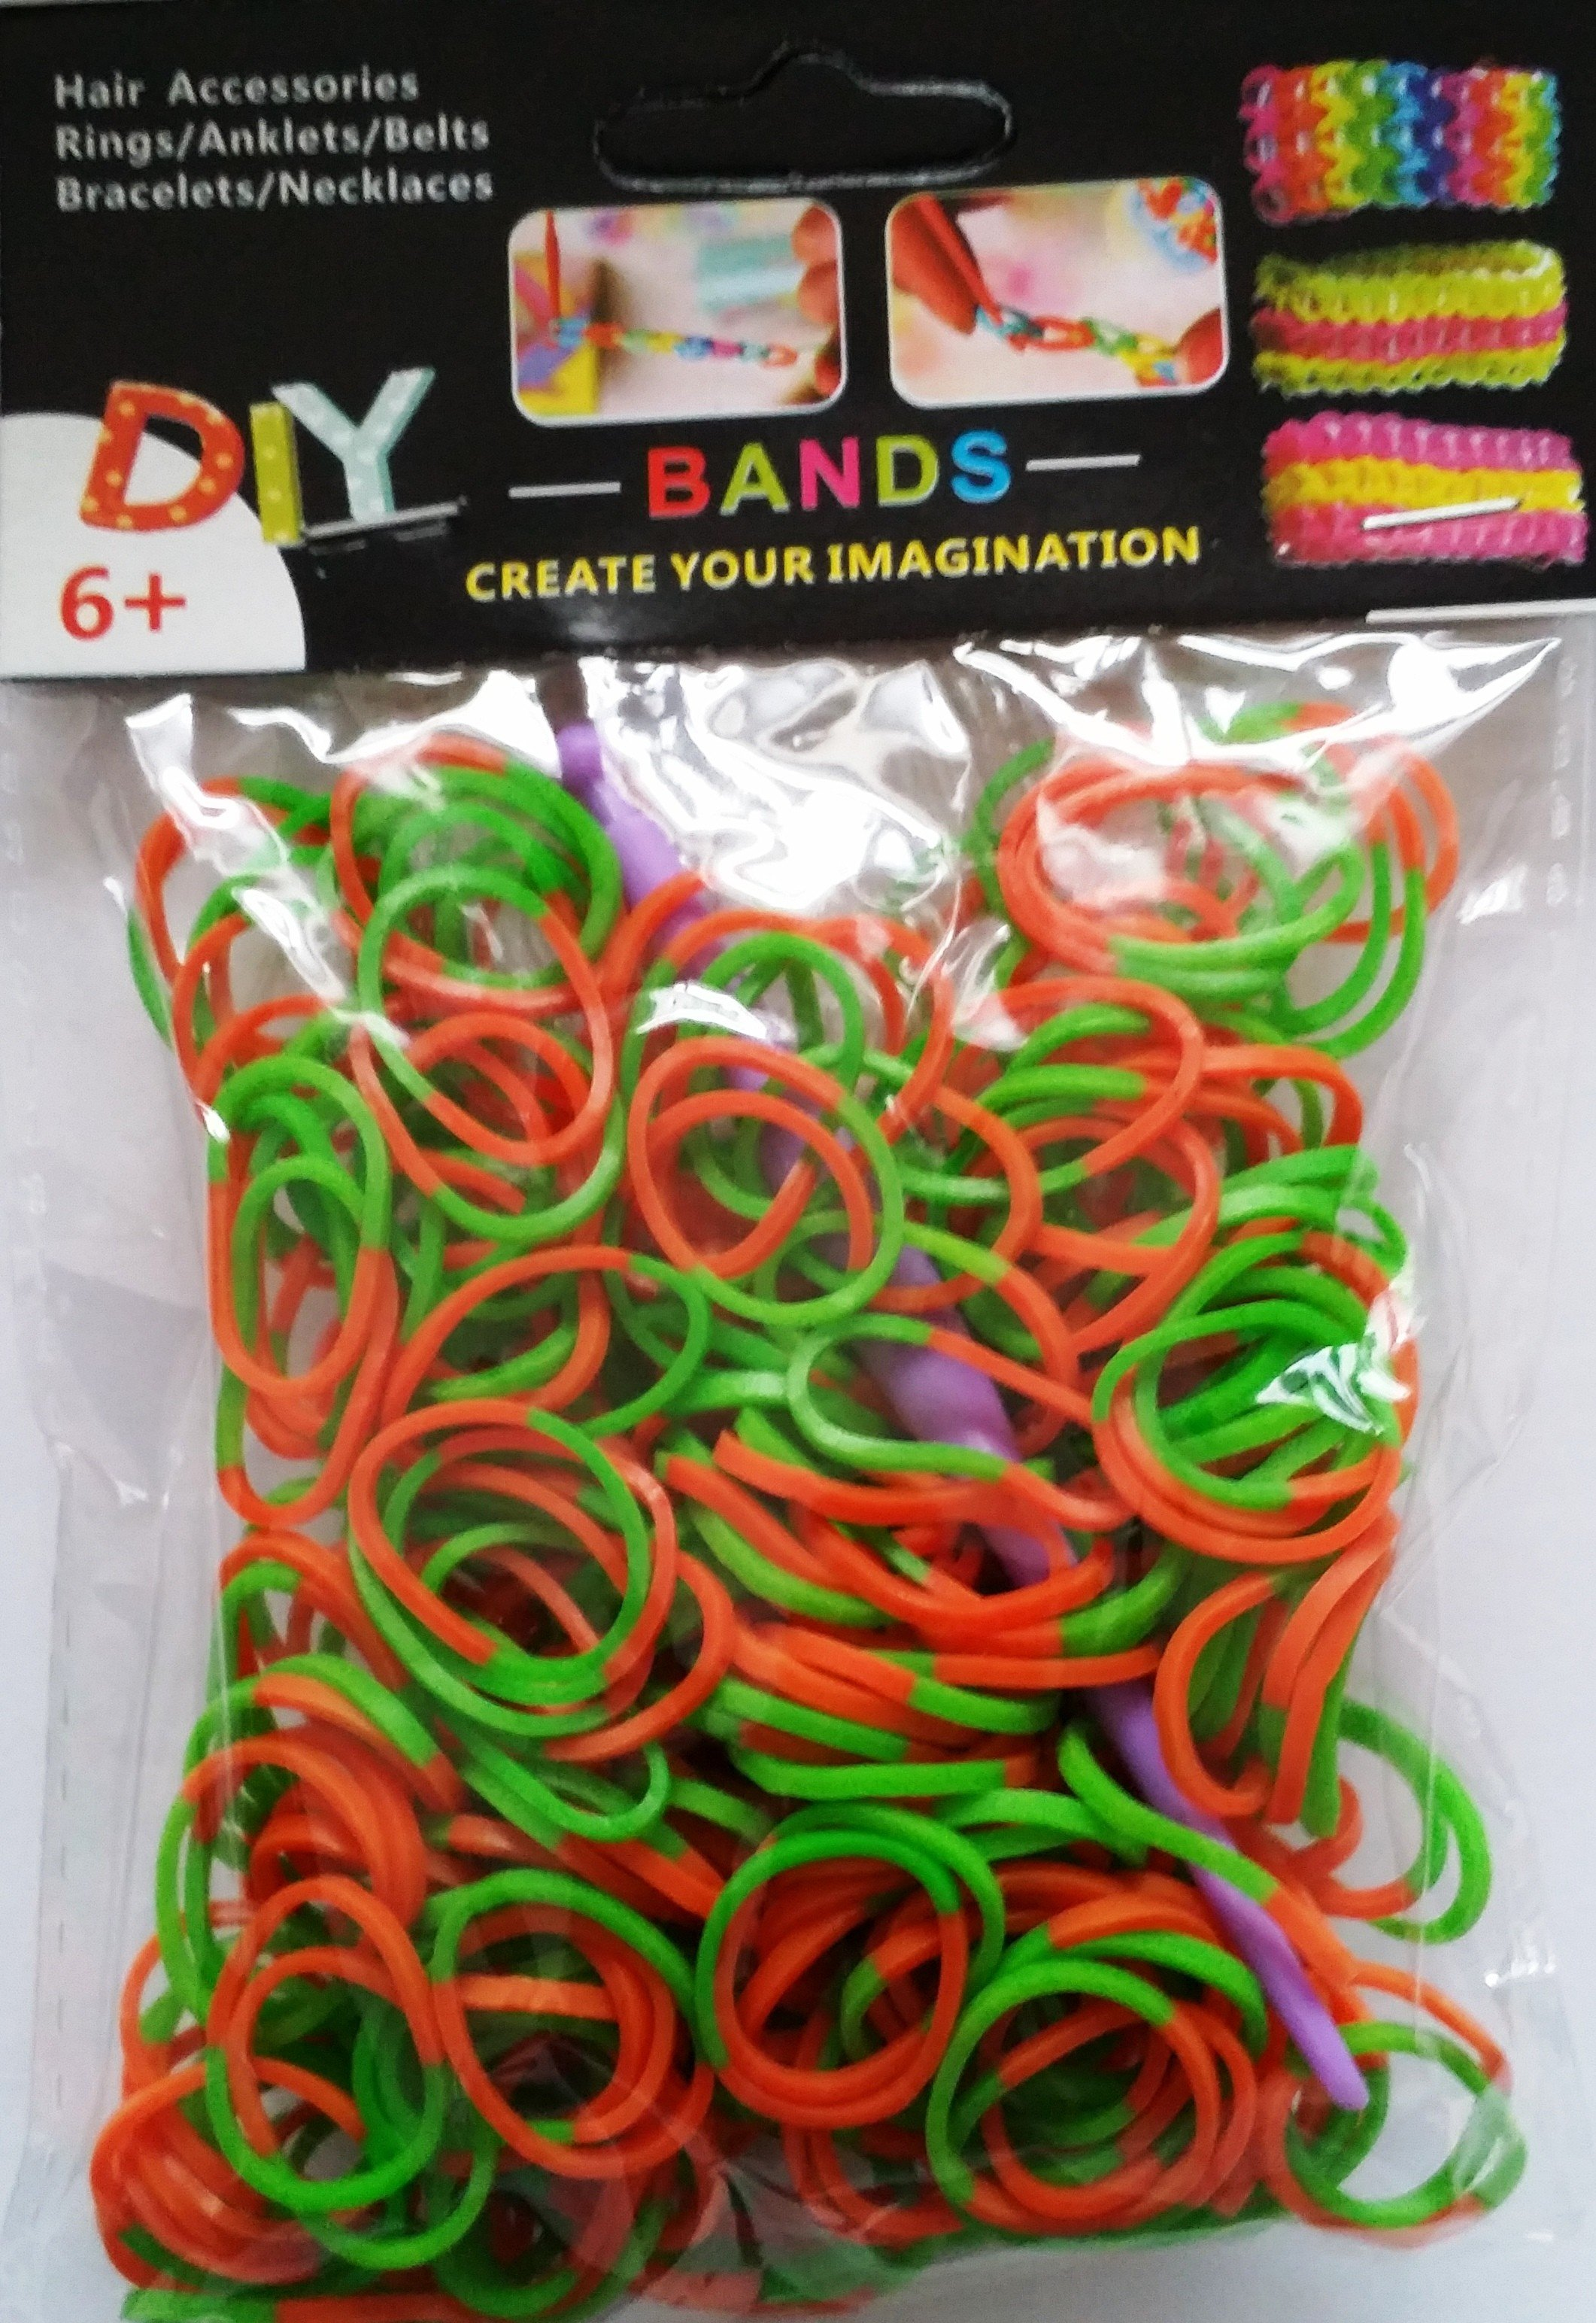 NEW 2 Tone Loom Bands- (Orange And Green) 300s x 12 Packs